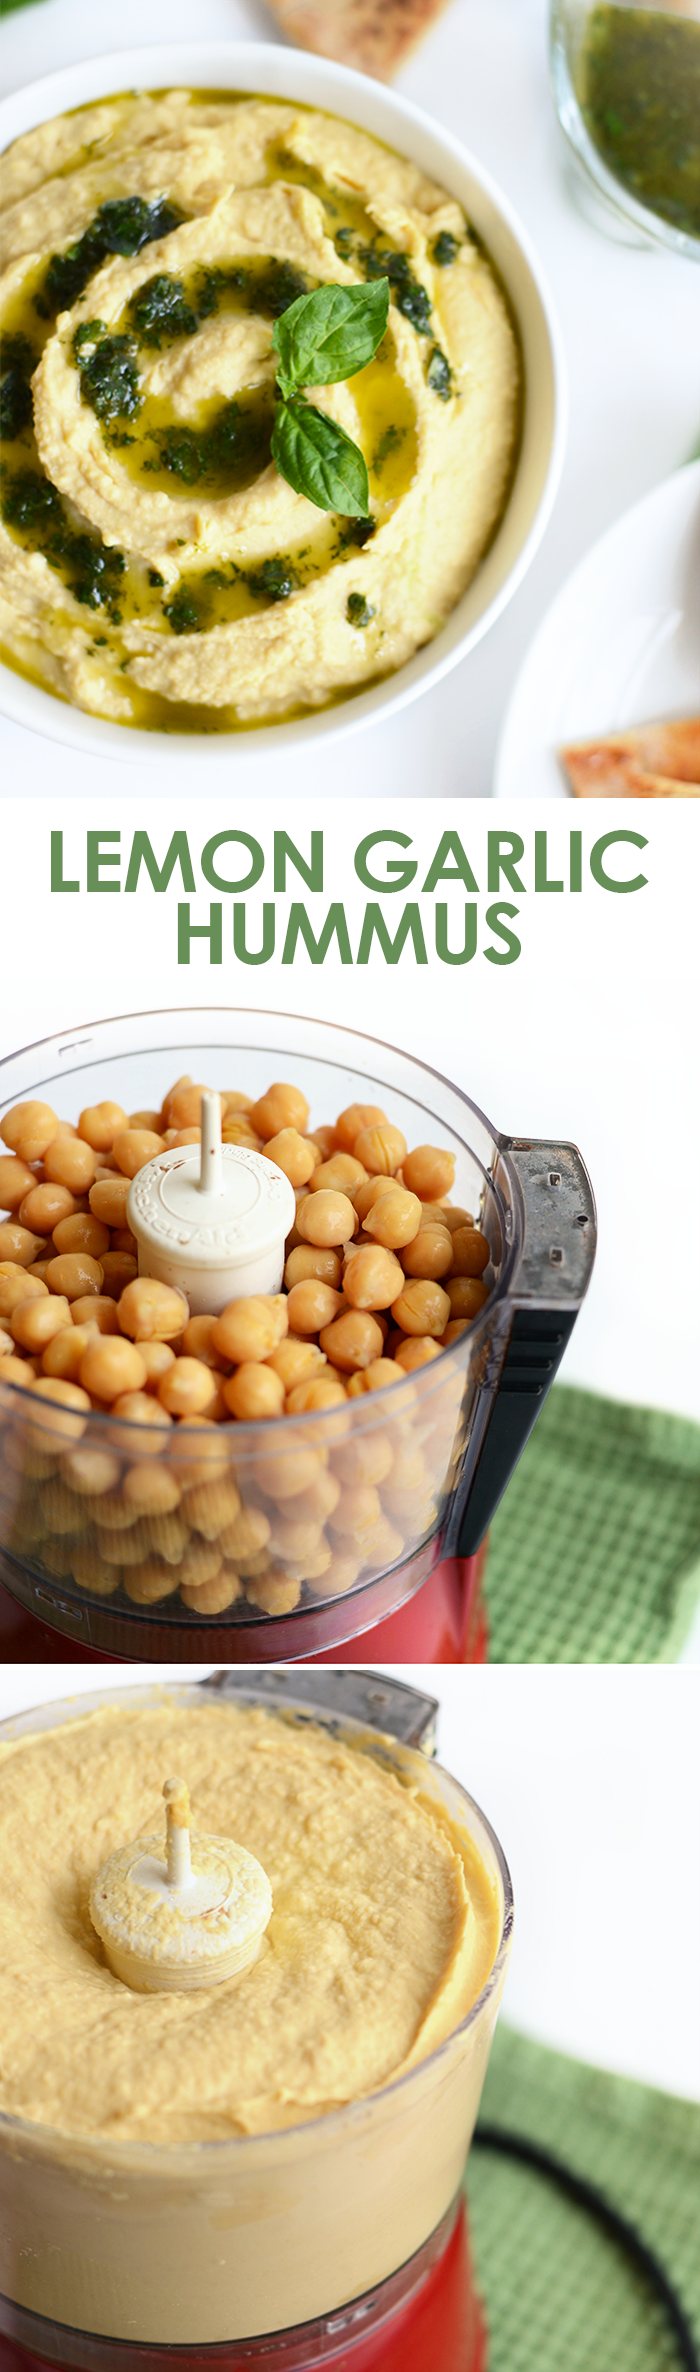 lemon garlic hummus rezept eating healthy pinterest hummus hummus rezept und essen. Black Bedroom Furniture Sets. Home Design Ideas